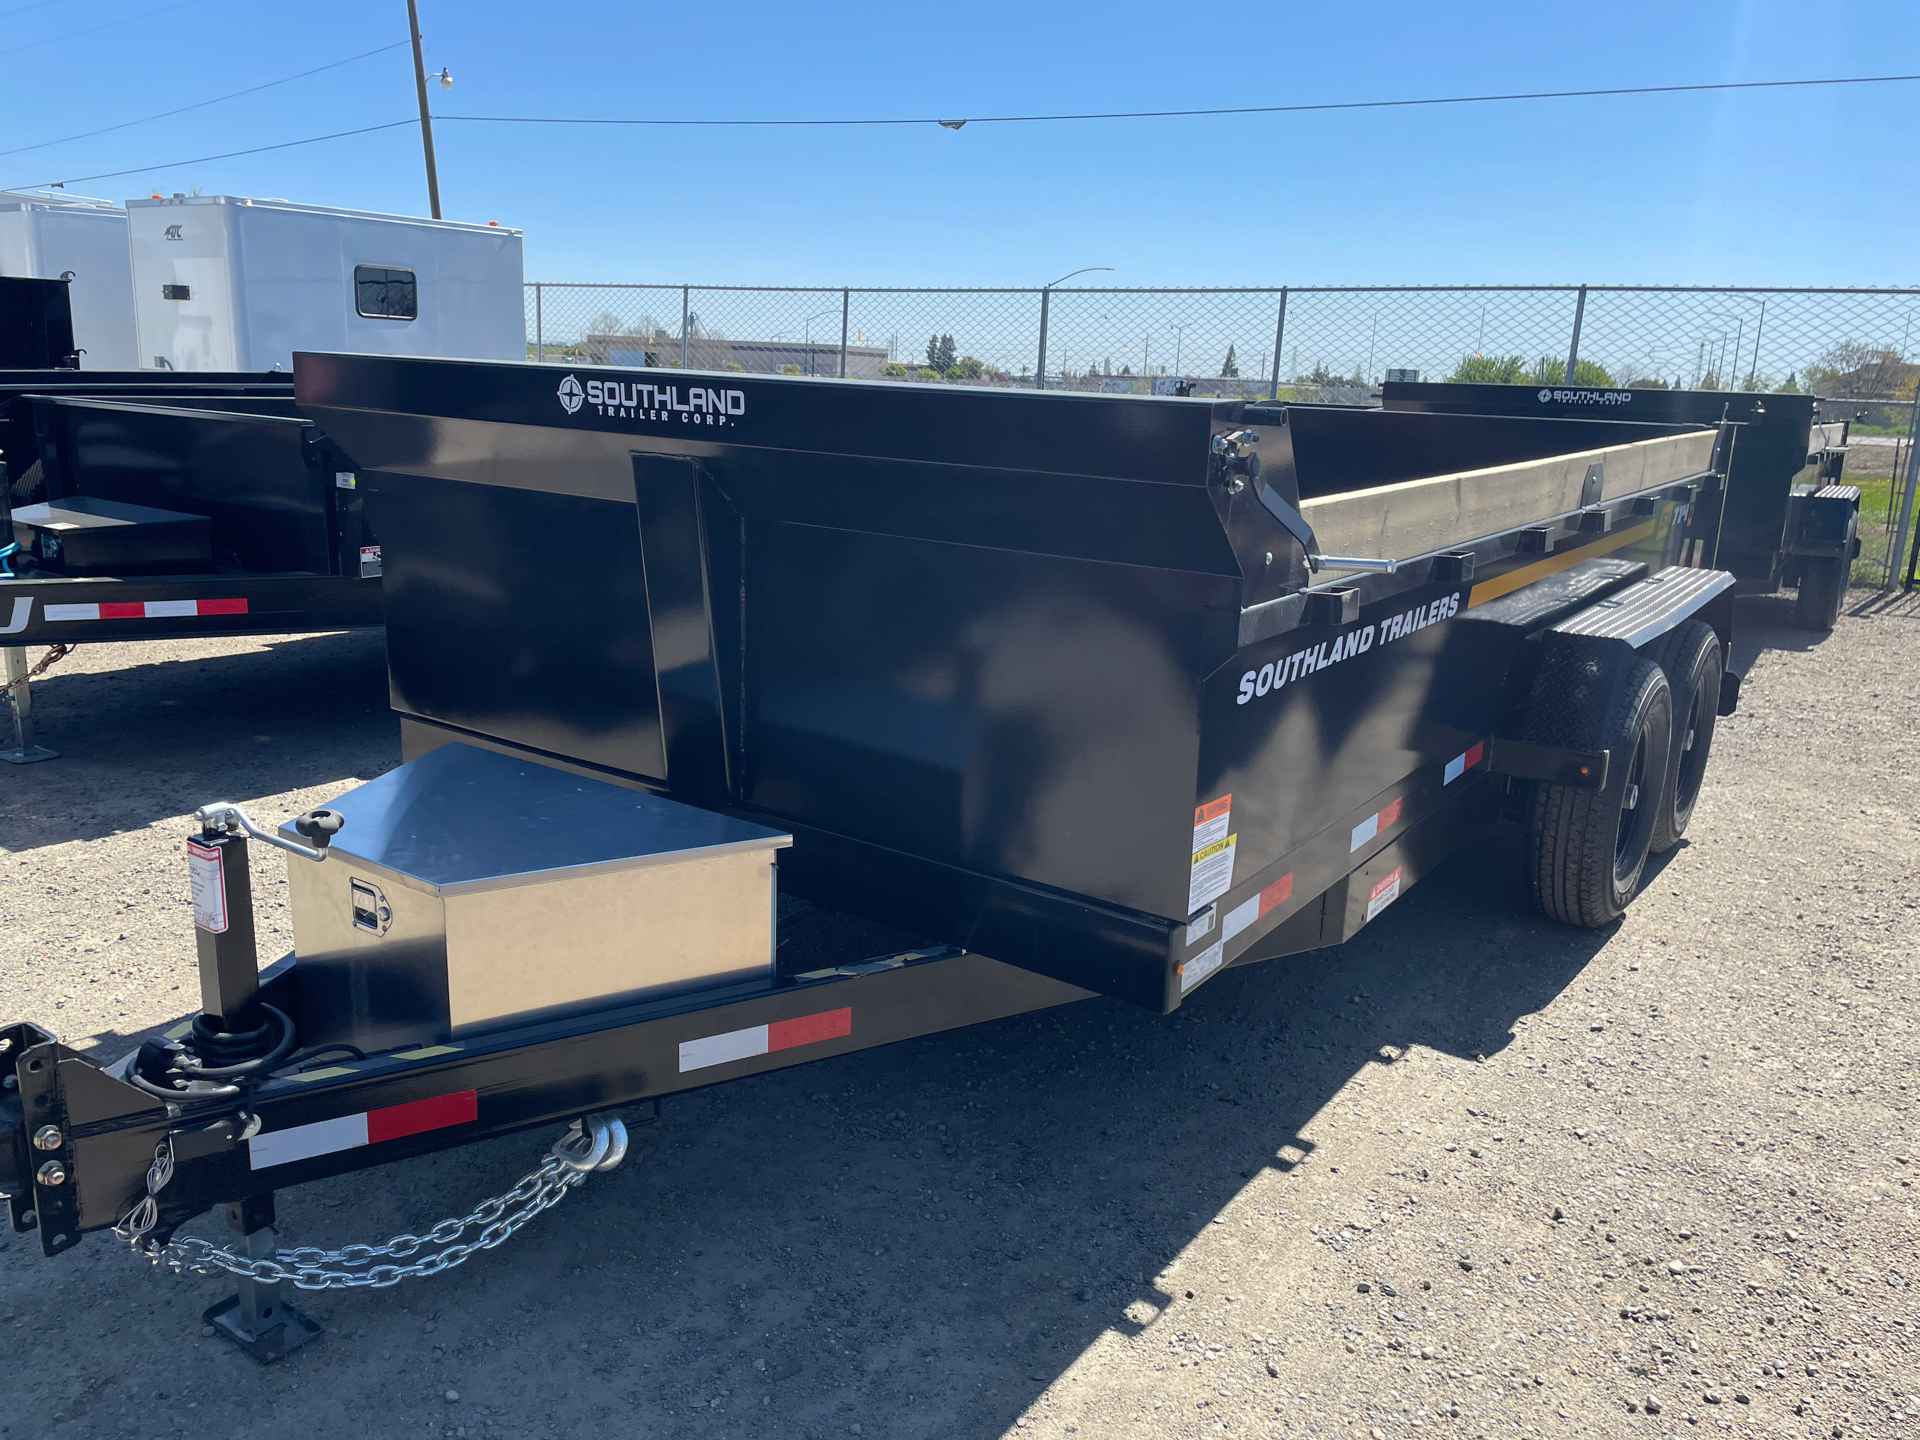 2021 SOUTHLAND TRAILER CORP SL714-14K DUMP in Elk Grove, California - Photo 1